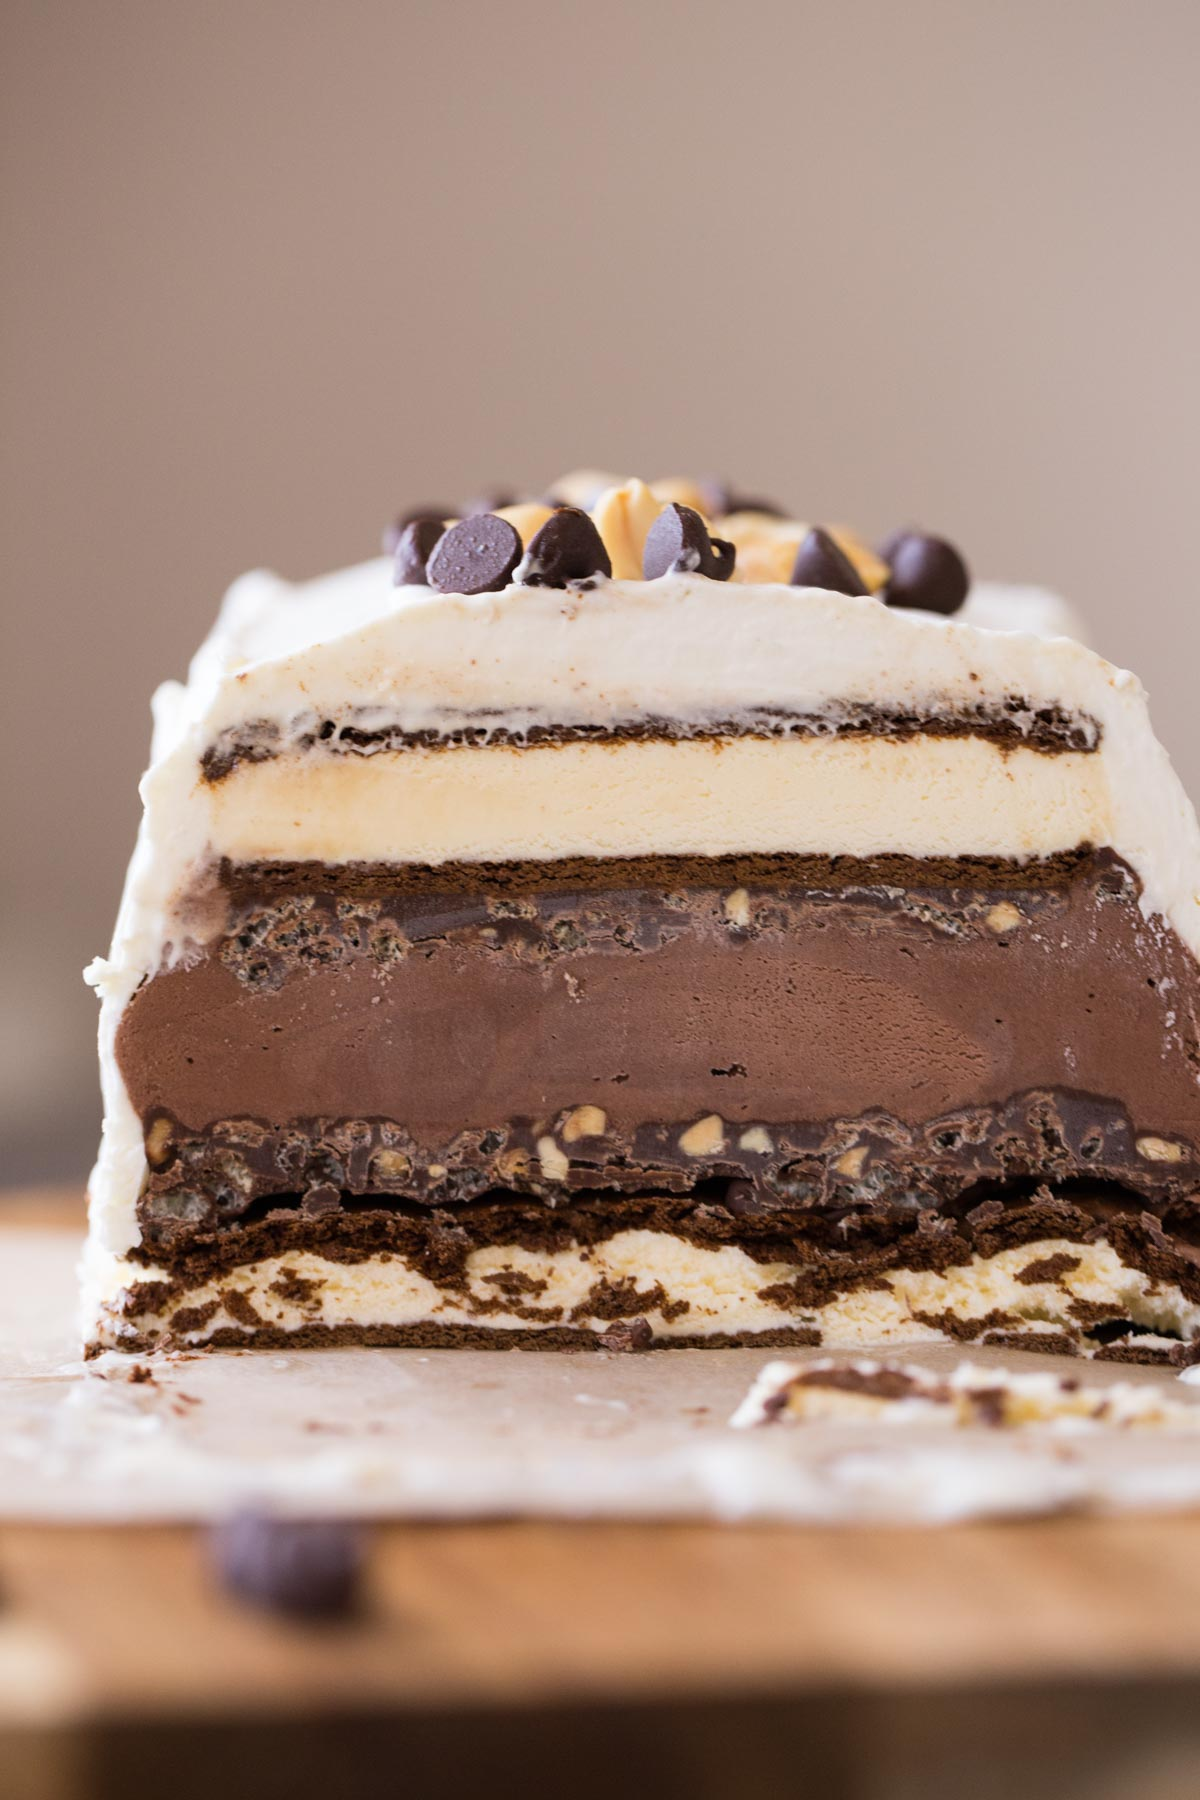 Chocolate Peanut Butter Ice Cream Slice Cake that has been sliced so it is showing the different layers.